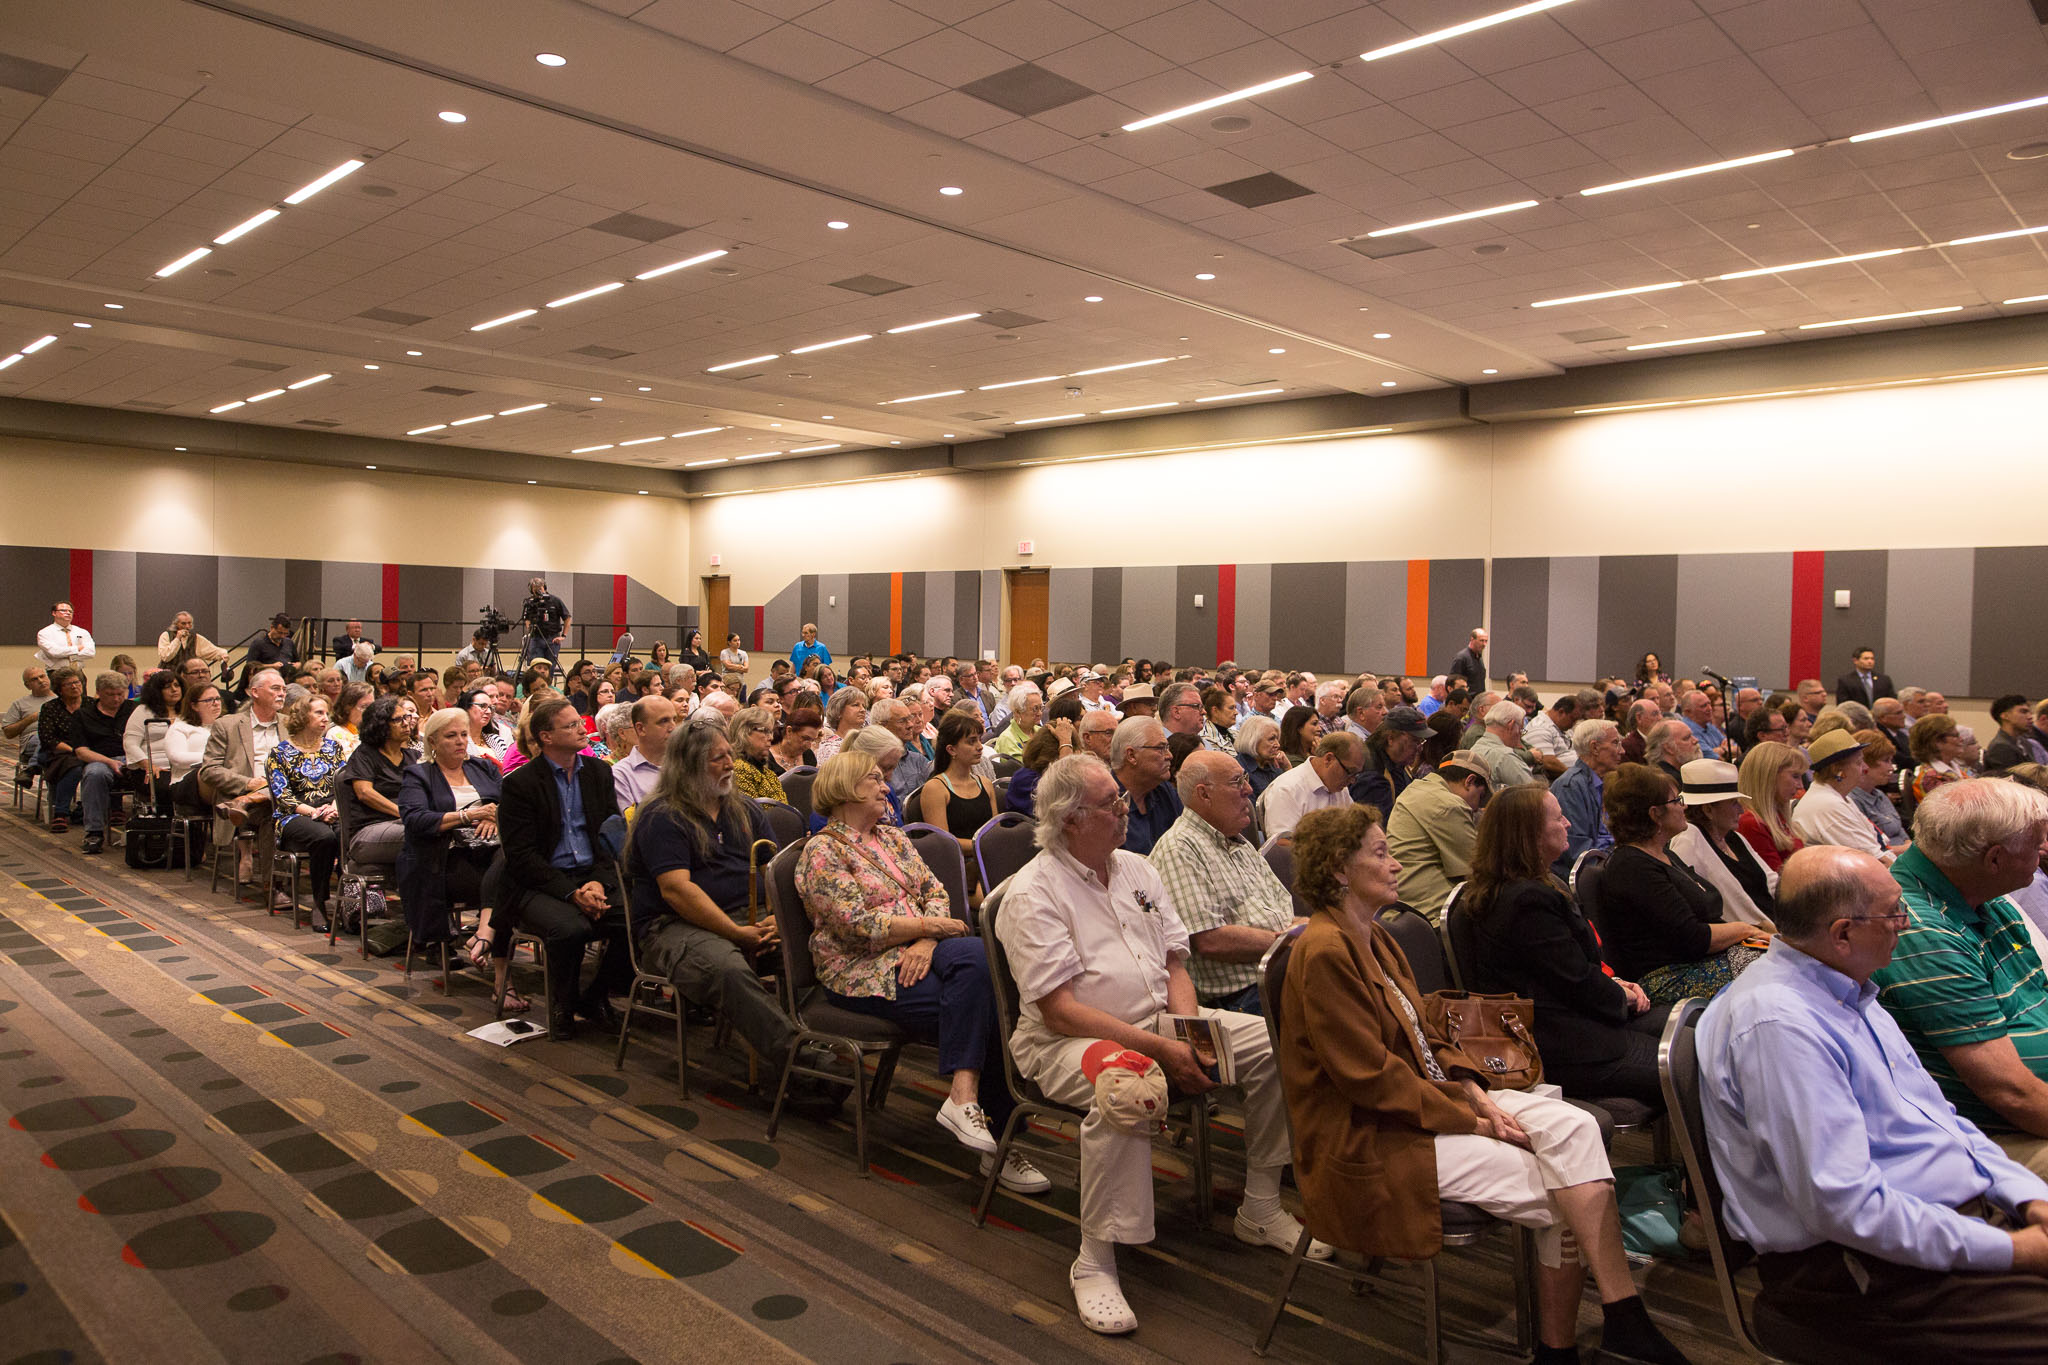 Over 300 community members attended the Alamo Master Plan Design public meeting.